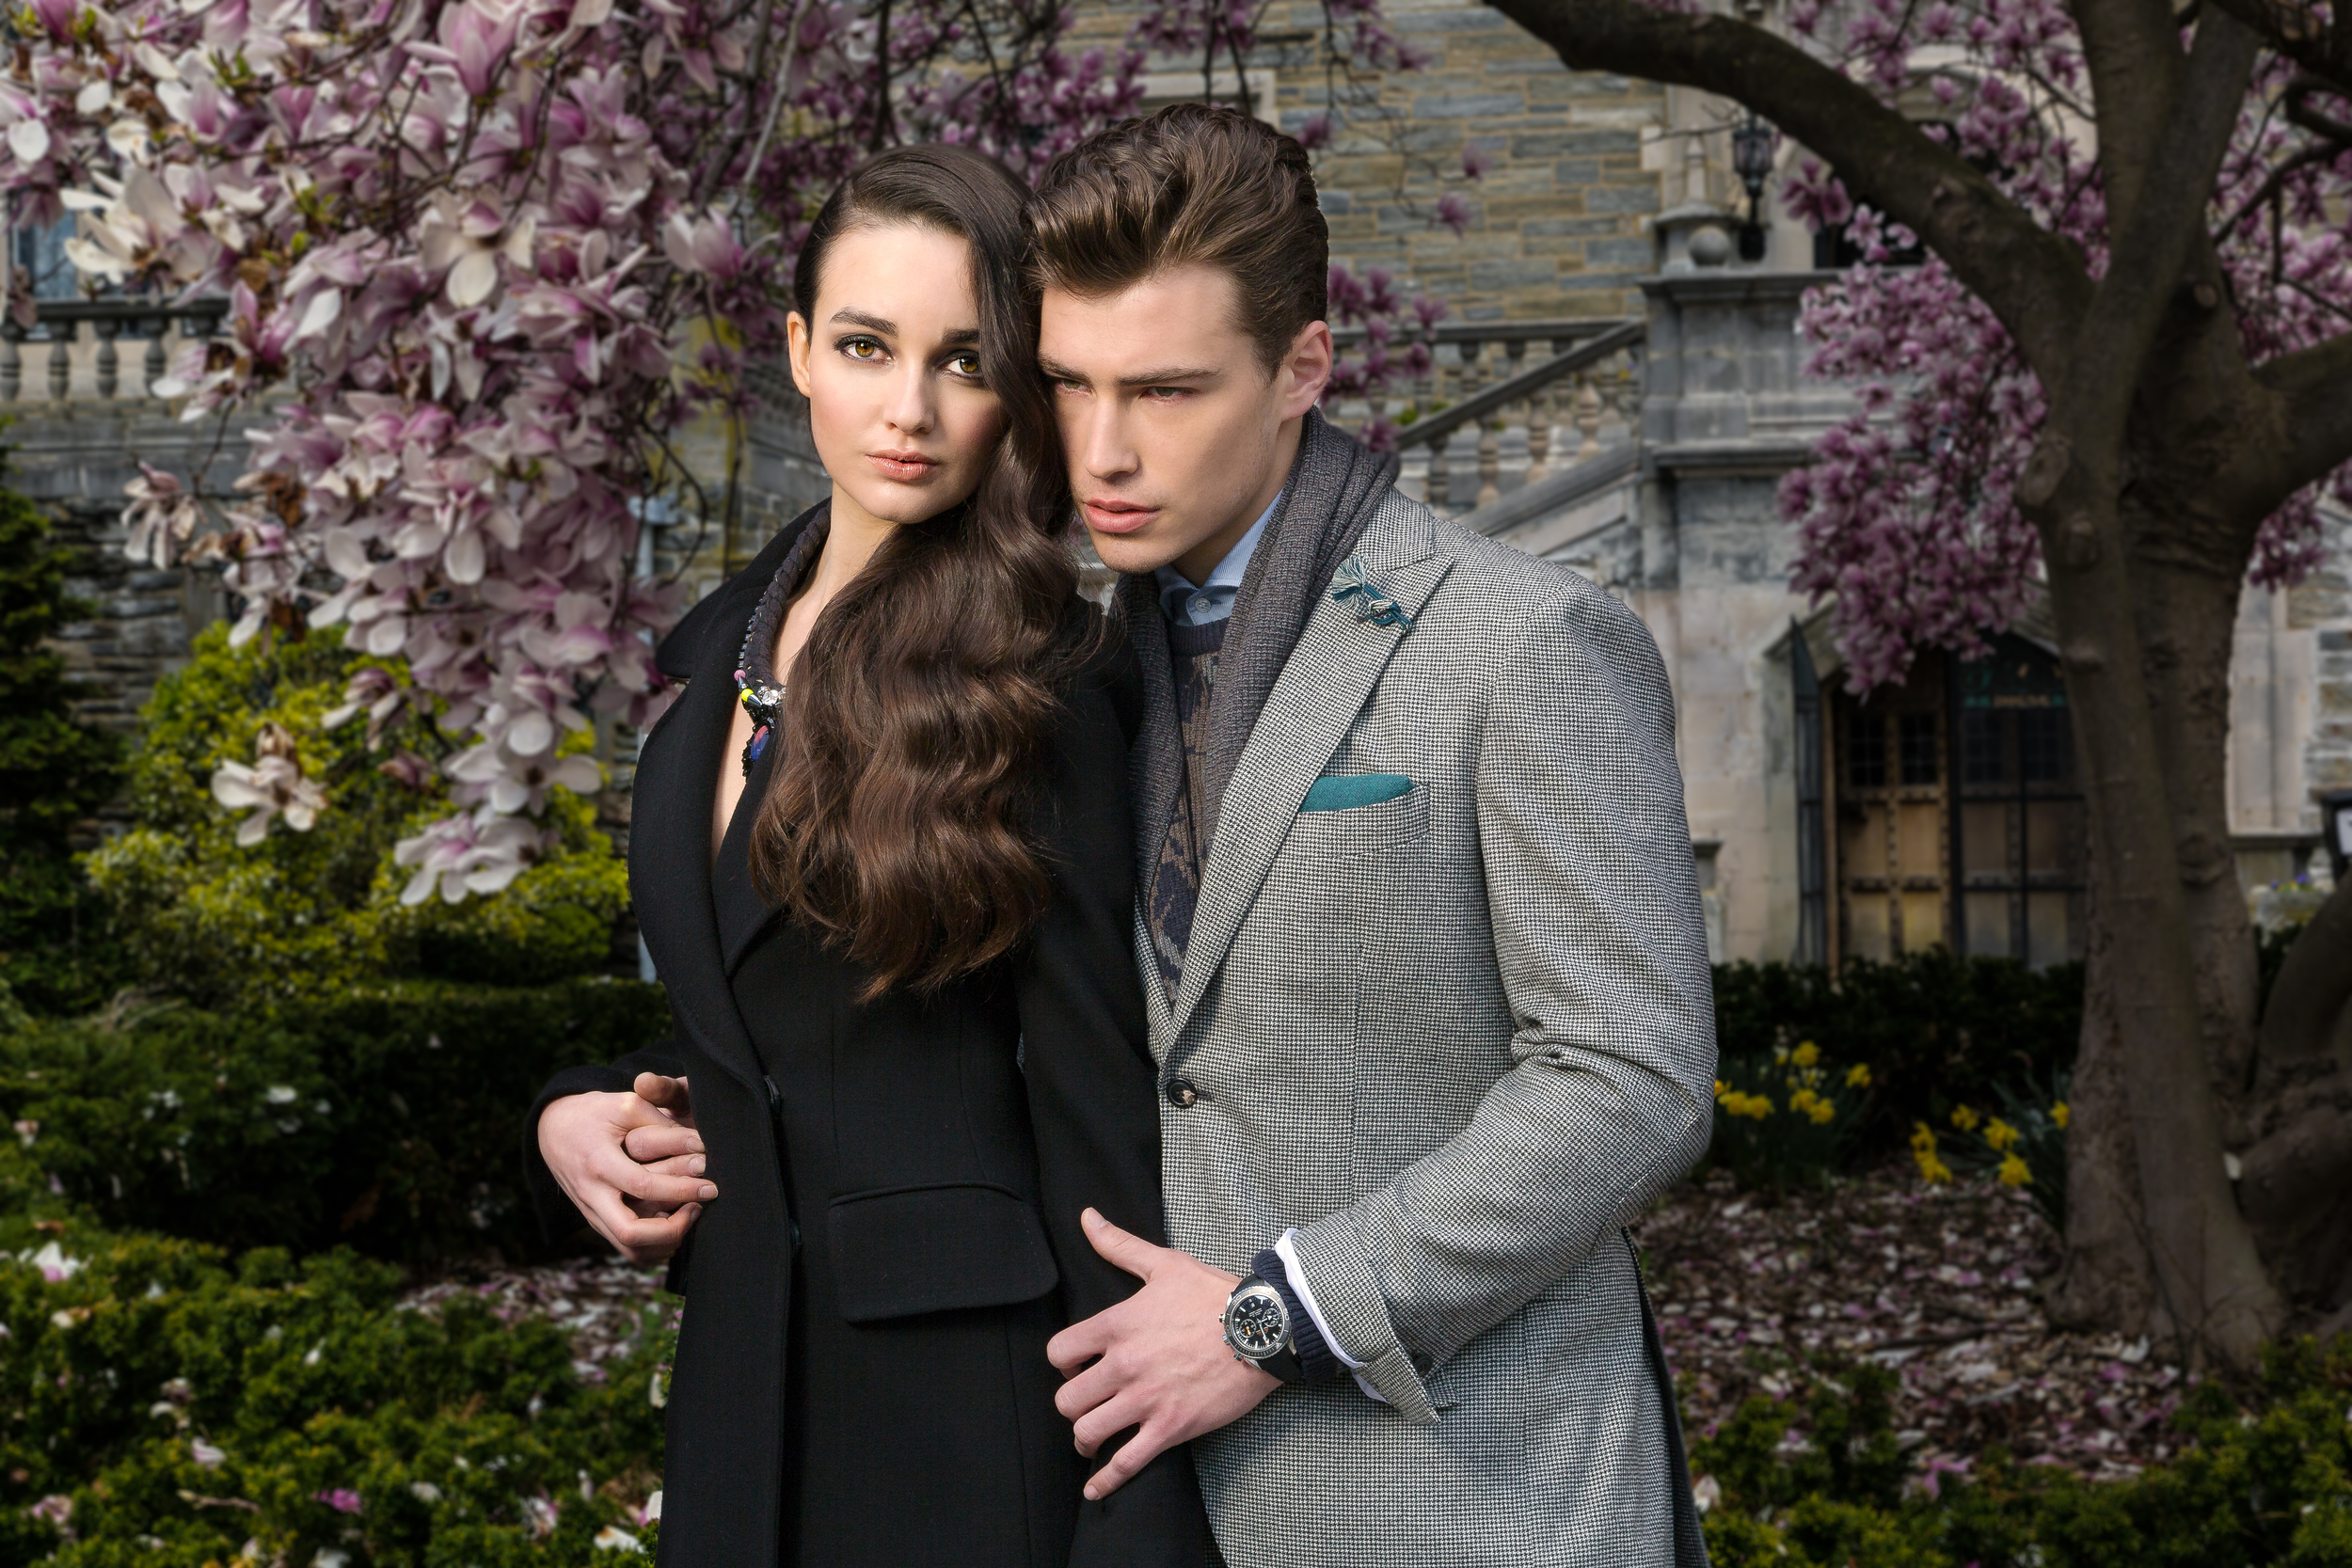 Fashion-NY-Couple-Blossoms-Eric Auffhammer-.jpg